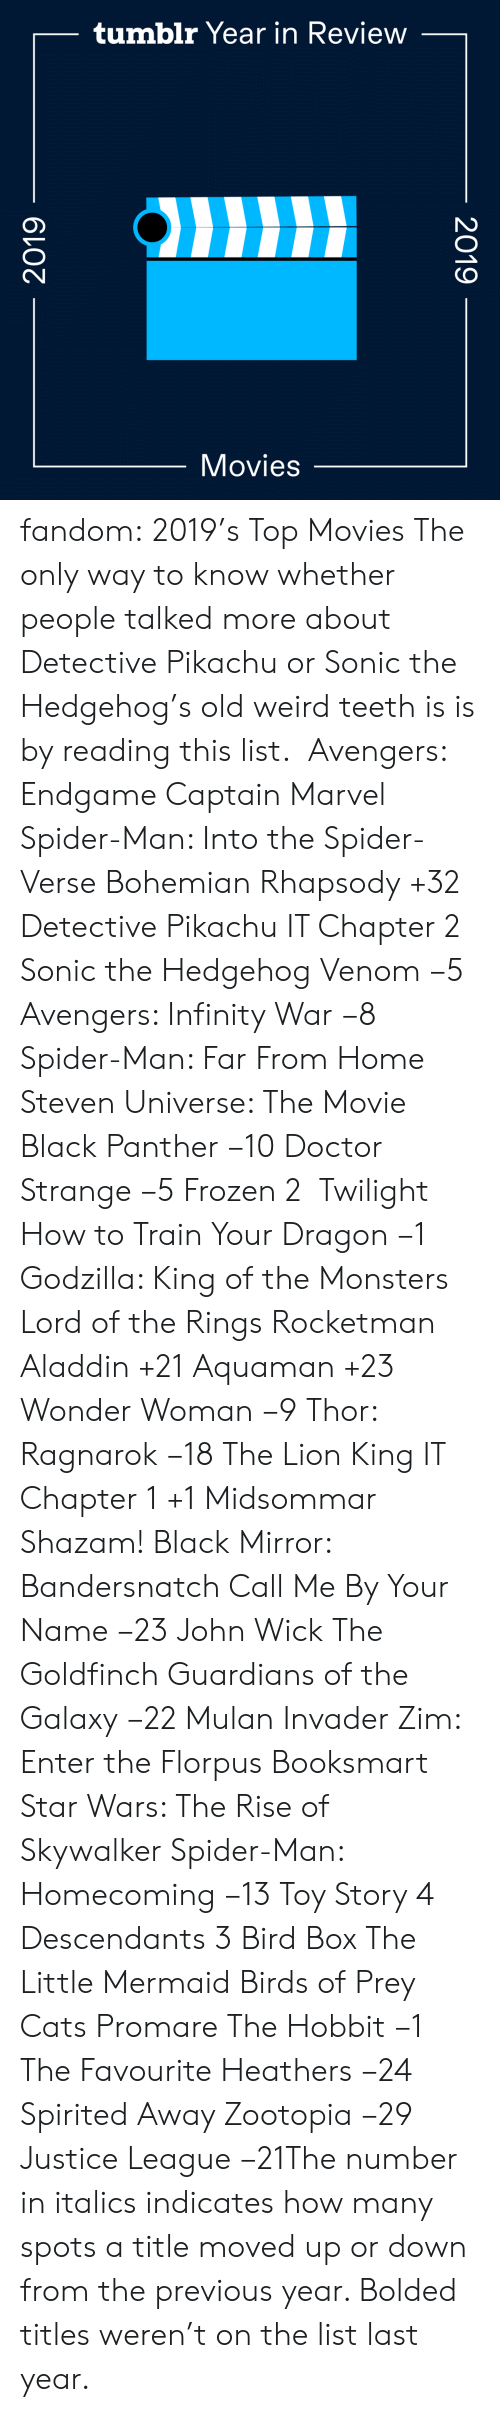 Mulan: tumblr Year in Review  Movies  2019  2019 fandom:  2019's Top Movies  The only way to know whether people talked more about Detective Pikachu or Sonic the Hedgehog's old weird teeth is is by reading this list.   Avengers: Endgame  Captain Marvel  Spider-Man: Into the Spider-Verse  Bohemian Rhapsody +32  Detective Pikachu  IT Chapter 2  Sonic the Hedgehog  Venom −5  Avengers: Infinity War −8  Spider-Man: Far From Home  Steven Universe: The Movie  Black Panther −10  Doctor Strange −5  Frozen 2   Twilight  How to Train Your Dragon −1  Godzilla: King of the Monsters  Lord of the Rings  Rocketman  Aladdin +21  Aquaman +23  Wonder Woman −9  Thor: Ragnarok −18  The Lion King  IT Chapter 1 +1  Midsommar  Shazam!  Black Mirror: Bandersnatch  Call Me By Your Name −23  John Wick  The Goldfinch  Guardians of the Galaxy −22  Mulan  Invader Zim: Enter the Florpus  Booksmart  Star Wars: The Rise of Skywalker  Spider-Man: Homecoming −13  Toy Story 4  Descendants 3  Bird Box  The Little Mermaid  Birds of Prey  Cats  Promare  The Hobbit −1  The Favourite  Heathers −24  Spirited Away  Zootopia −29 Justice League −21The number in italics indicates how many spots a title moved up or down from the previous year. Bolded titles weren't on the list last year.